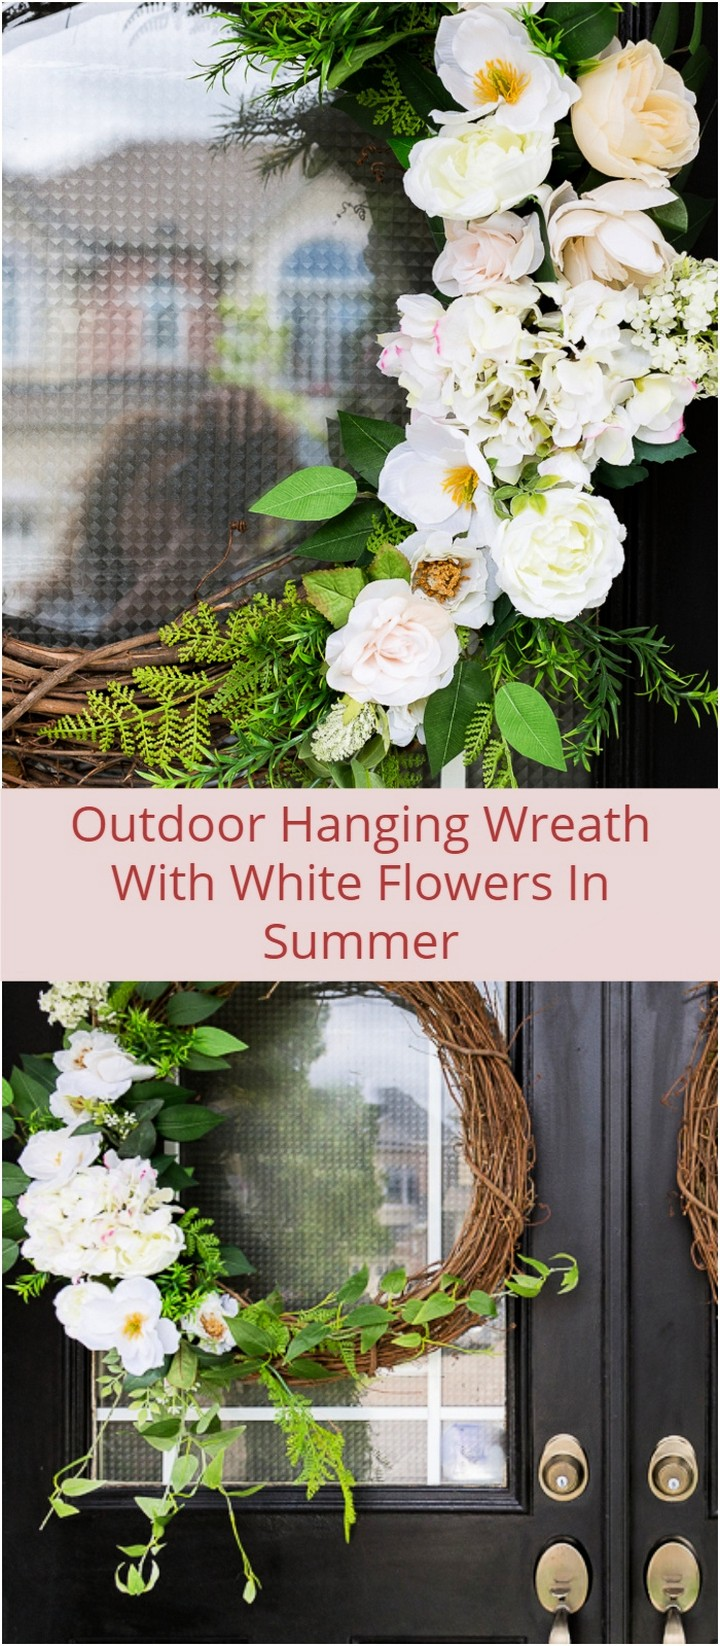 Outdoor Hanging Wreath With White Flowers In Summer